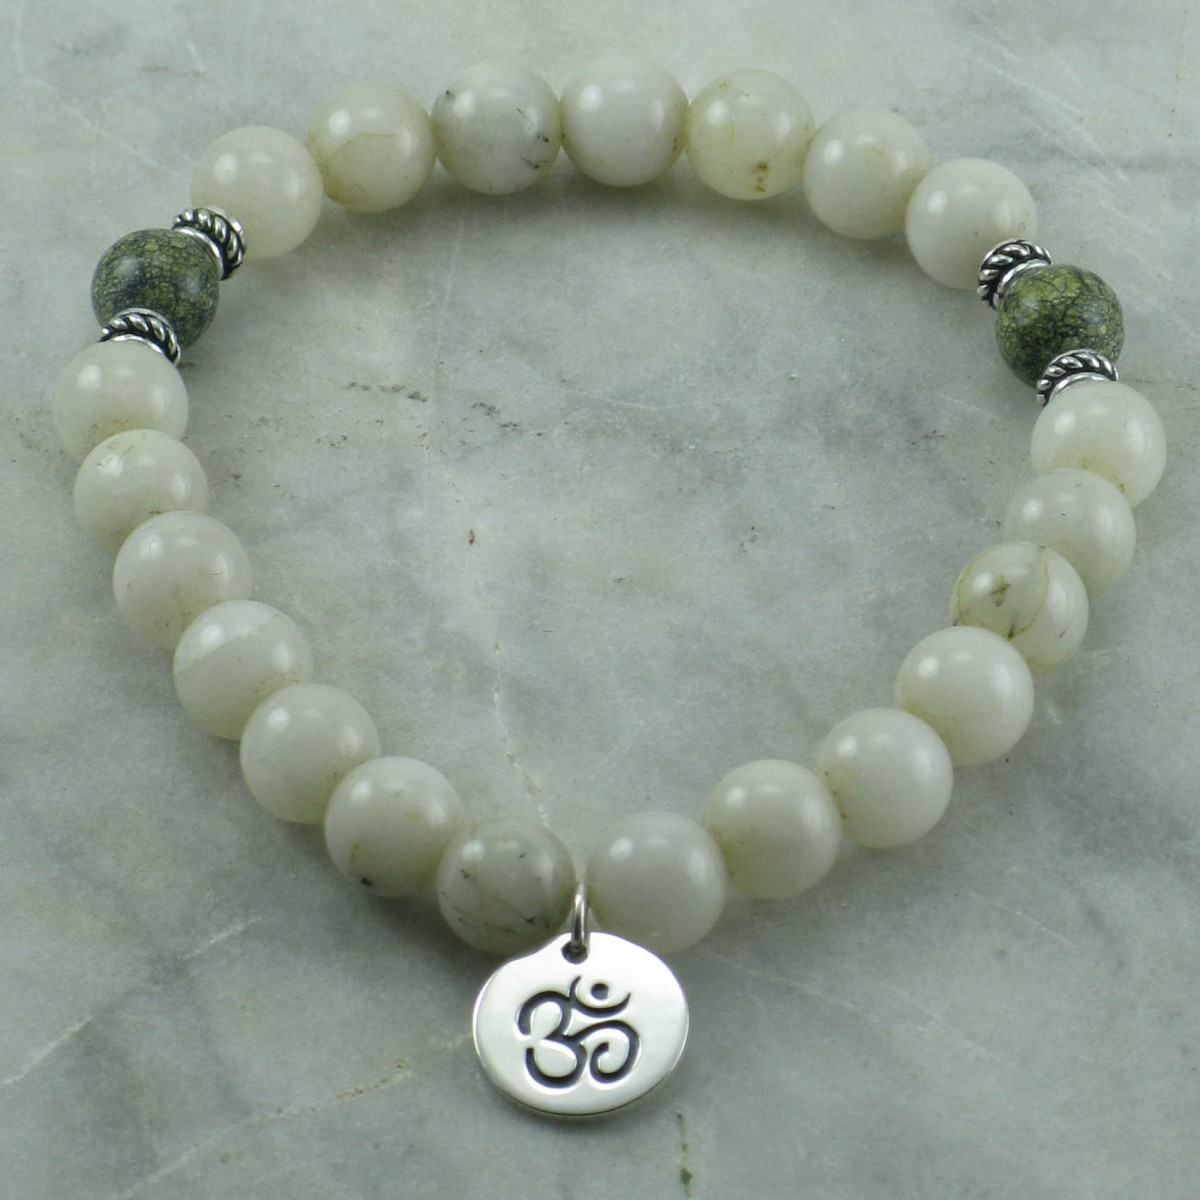 Purity_Mala_Bracelet_21_Quartz_Mala_Beads_1700